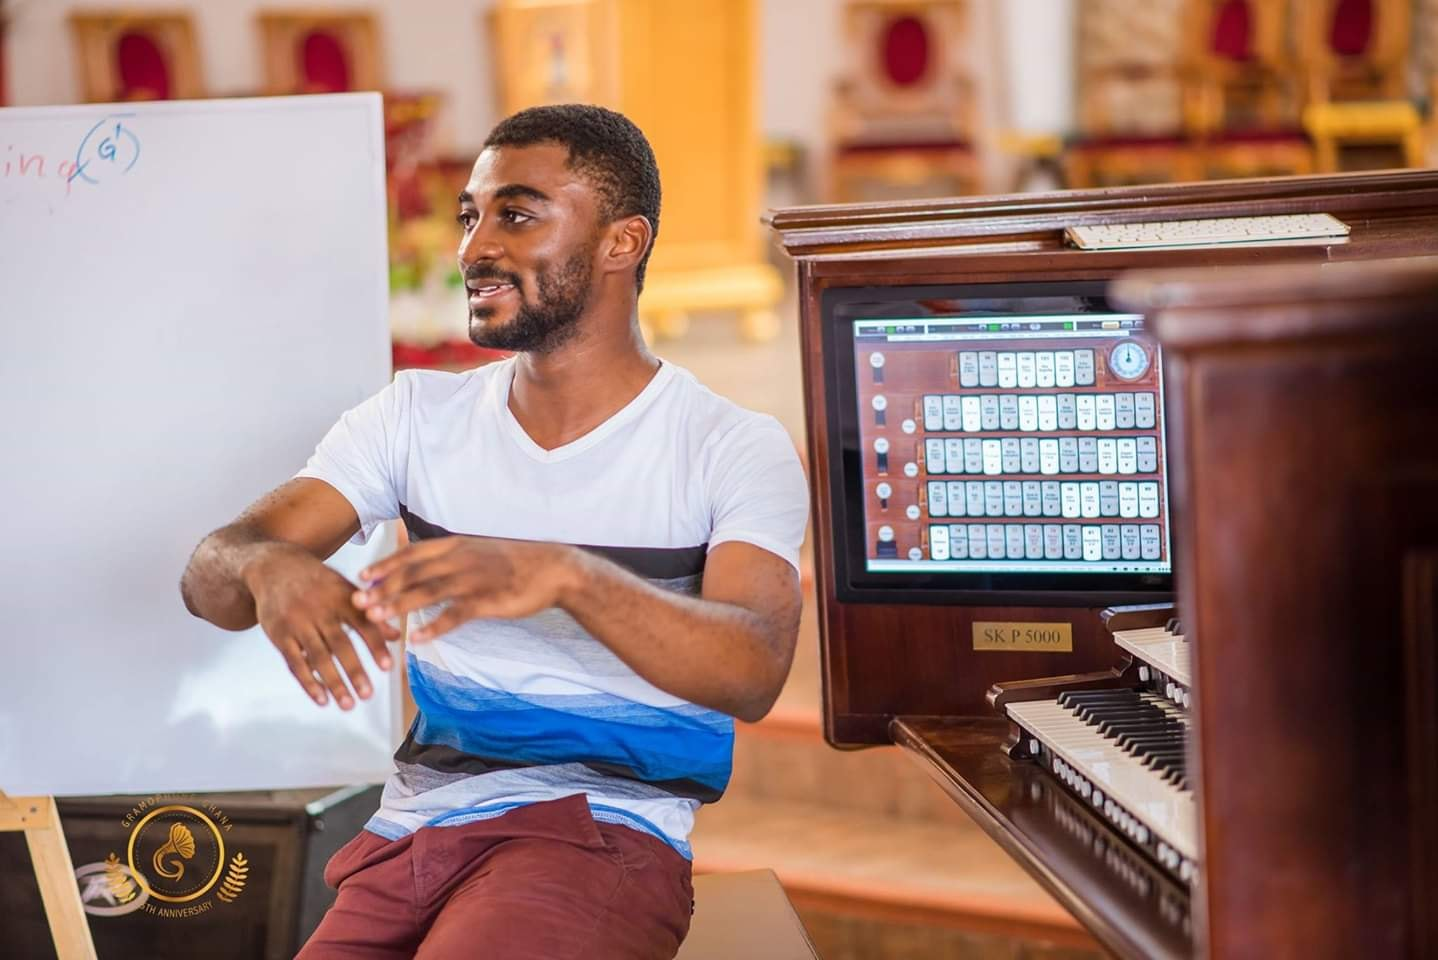 The Ghanaian Organ Maker Kwaku Boakye-Frempong spoke to Samuel Ekow Kwofie, the CEO of Olive Organs, the first Ghanaian organ maker, about the unique business he is exploring in the music space.